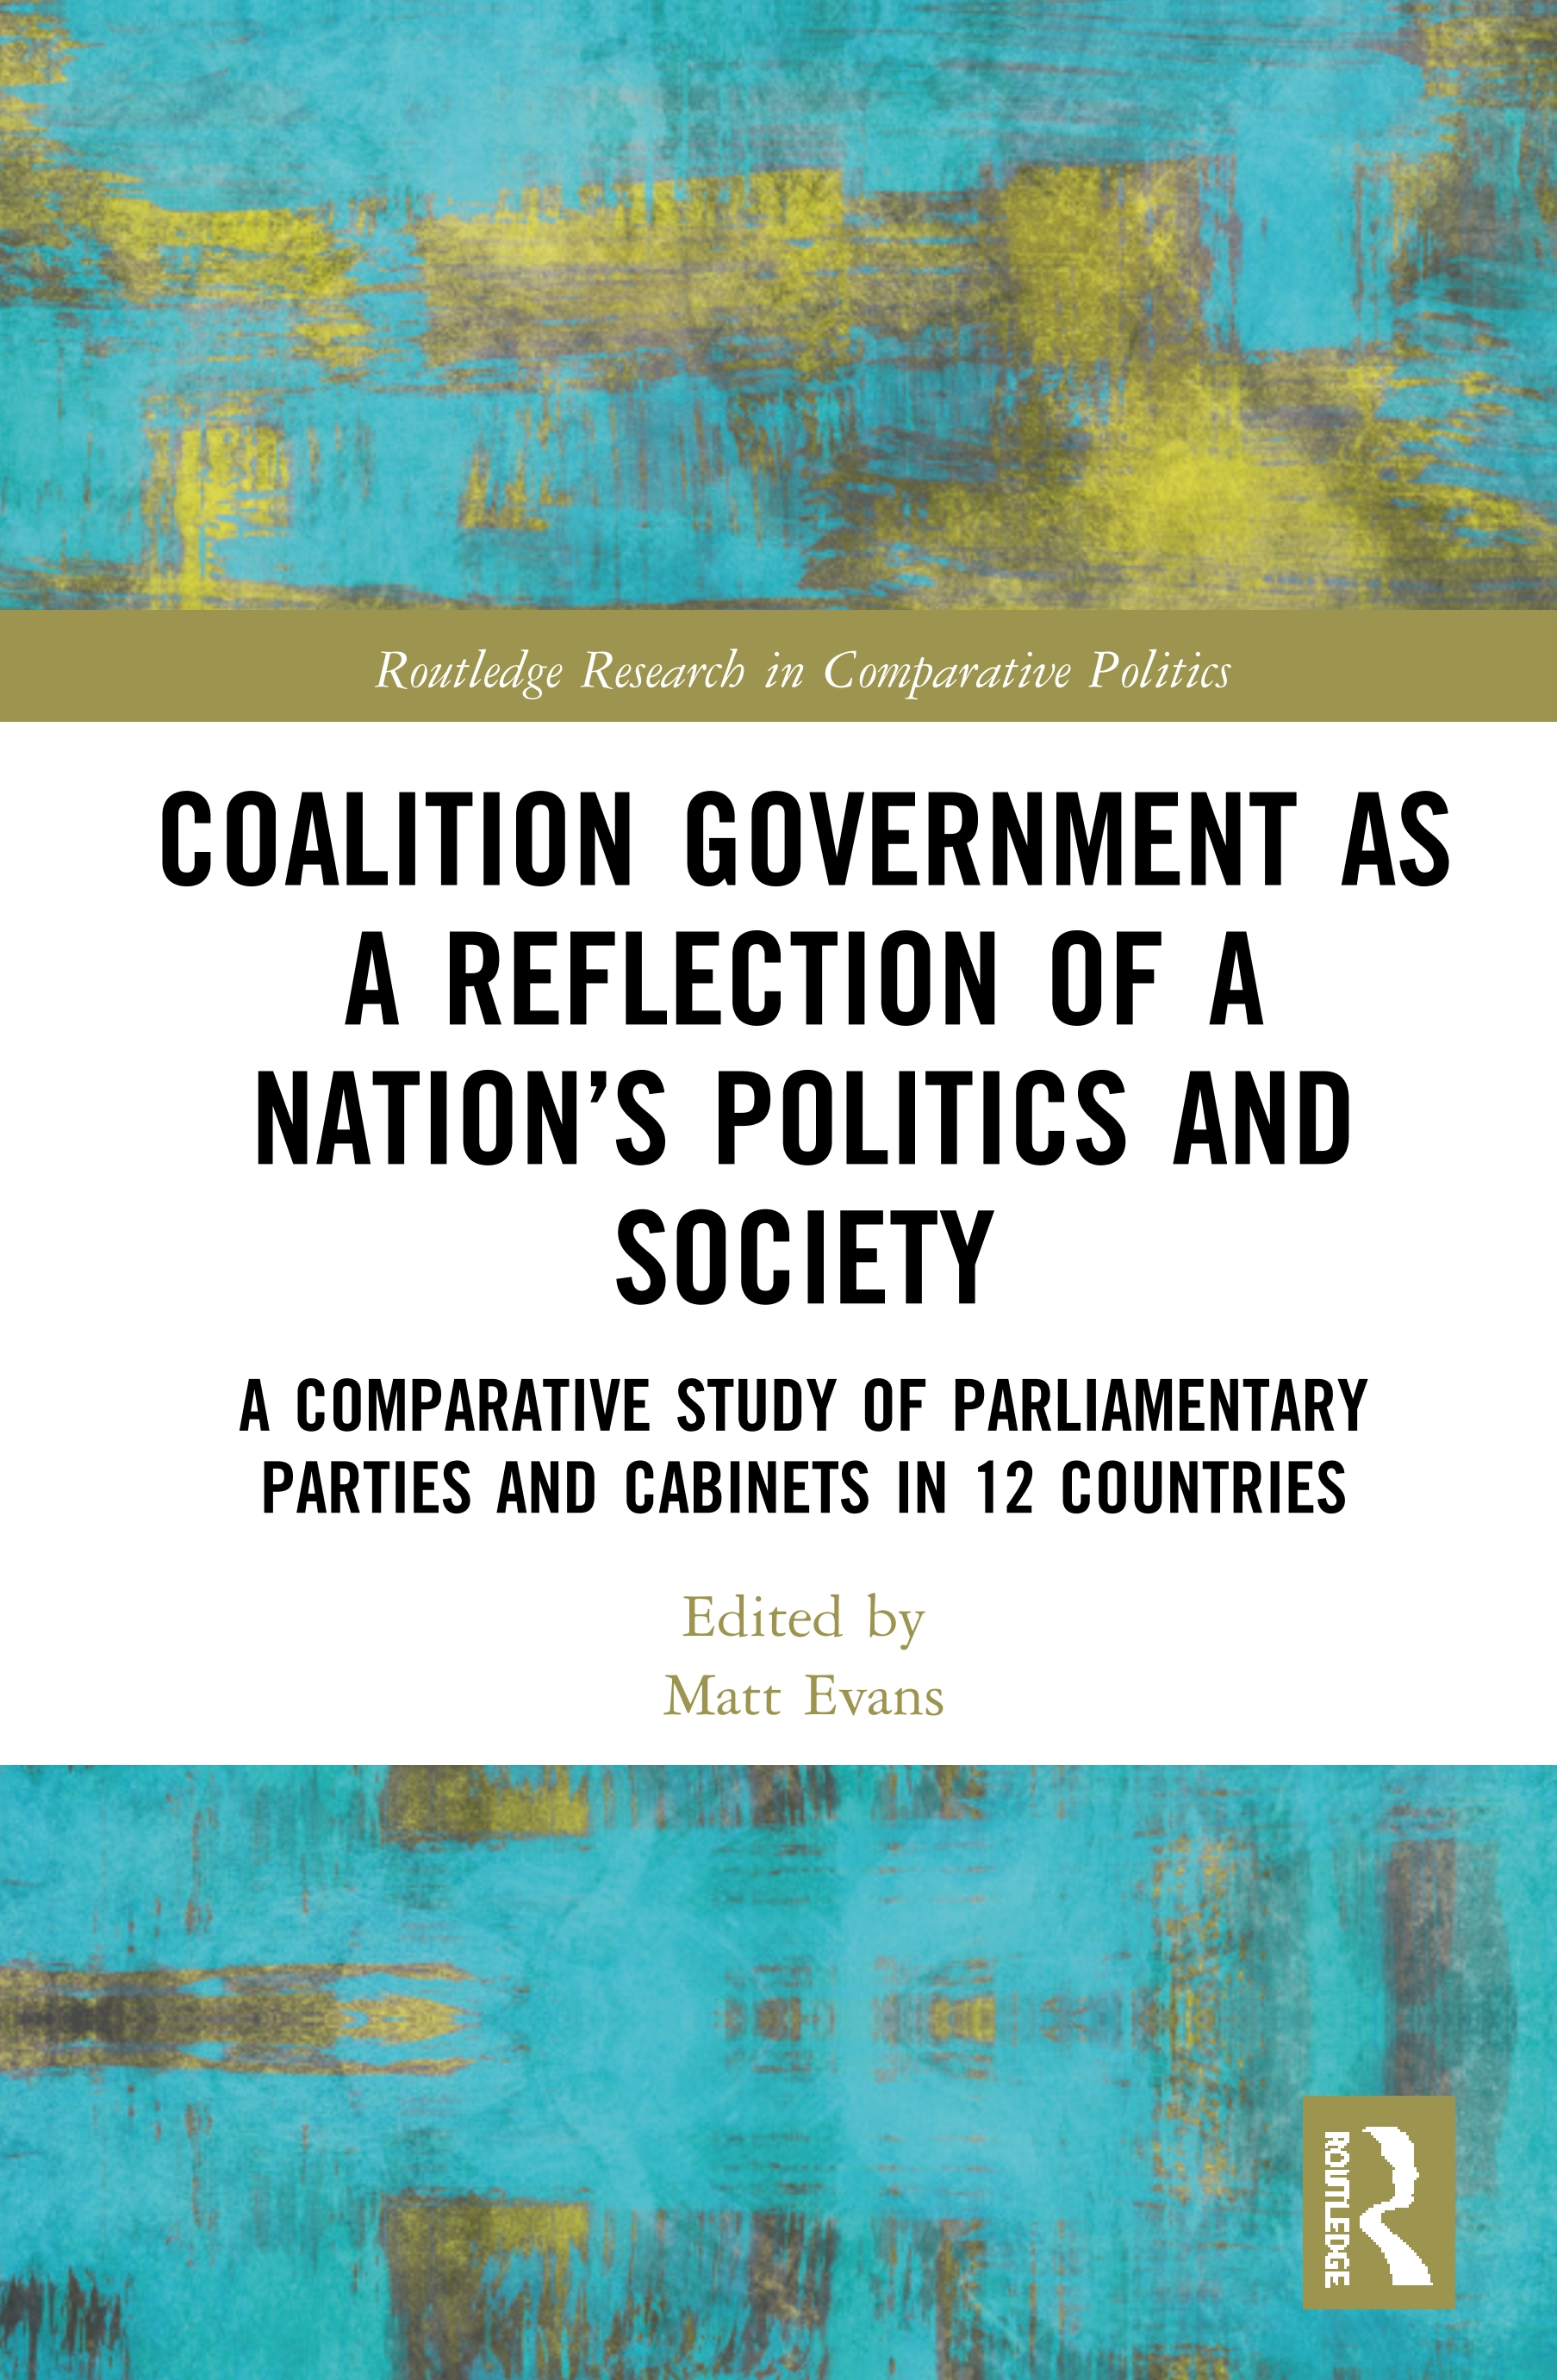 Coalition Government as a Reflection of a Nation's Politics